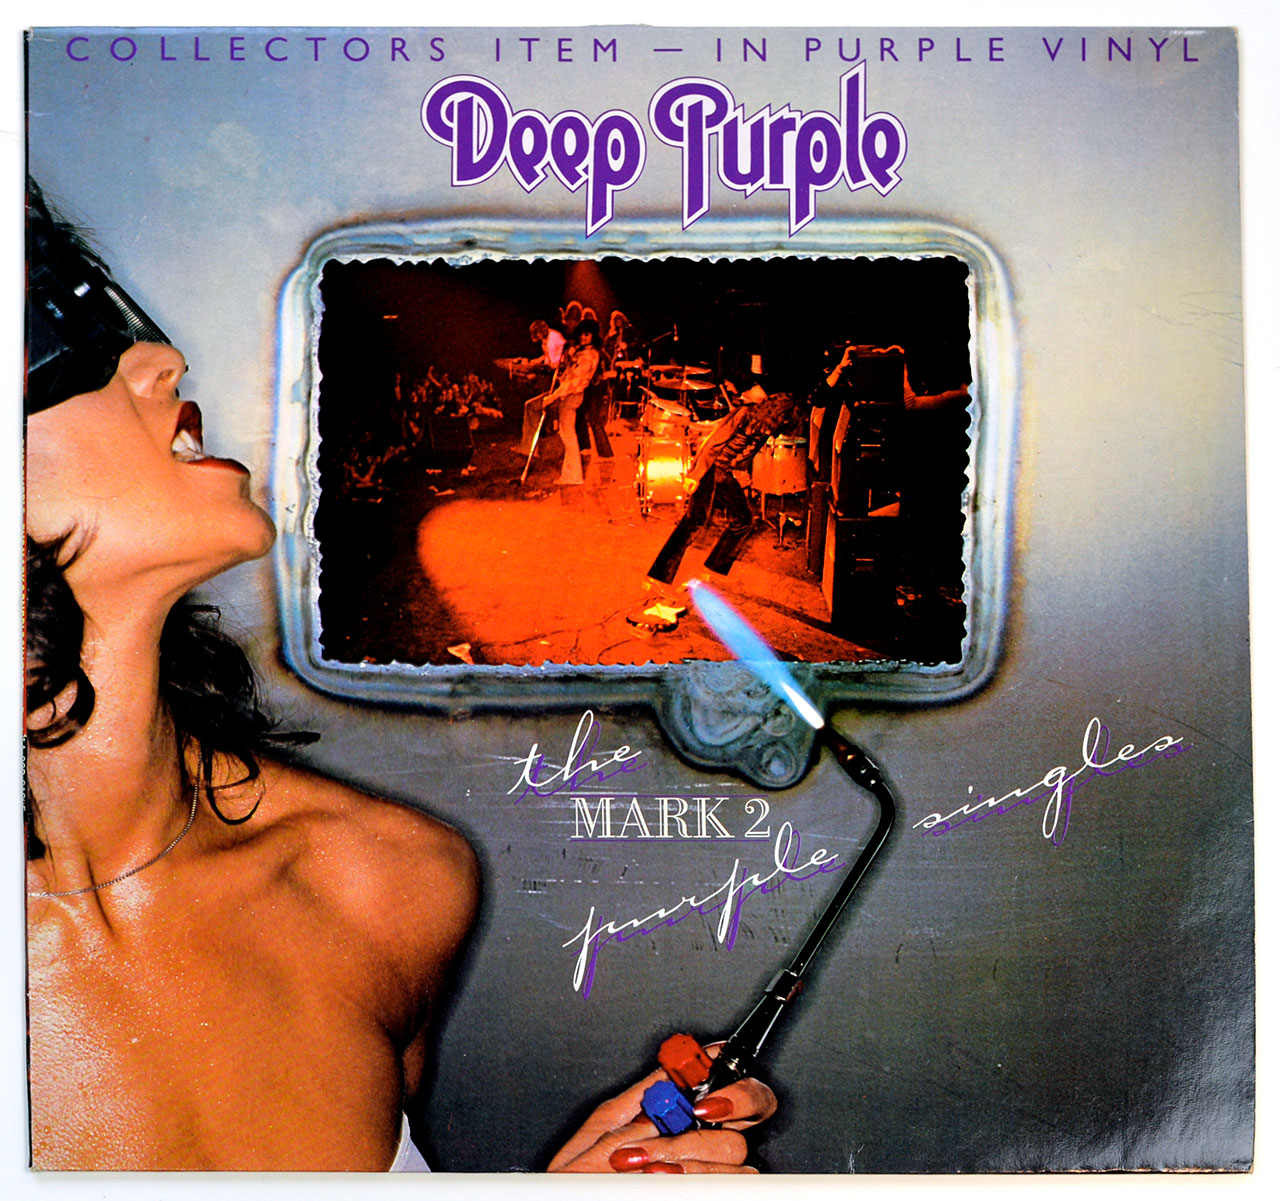 A0696 DEEP PURPLE The Mark 2 Purple Singles